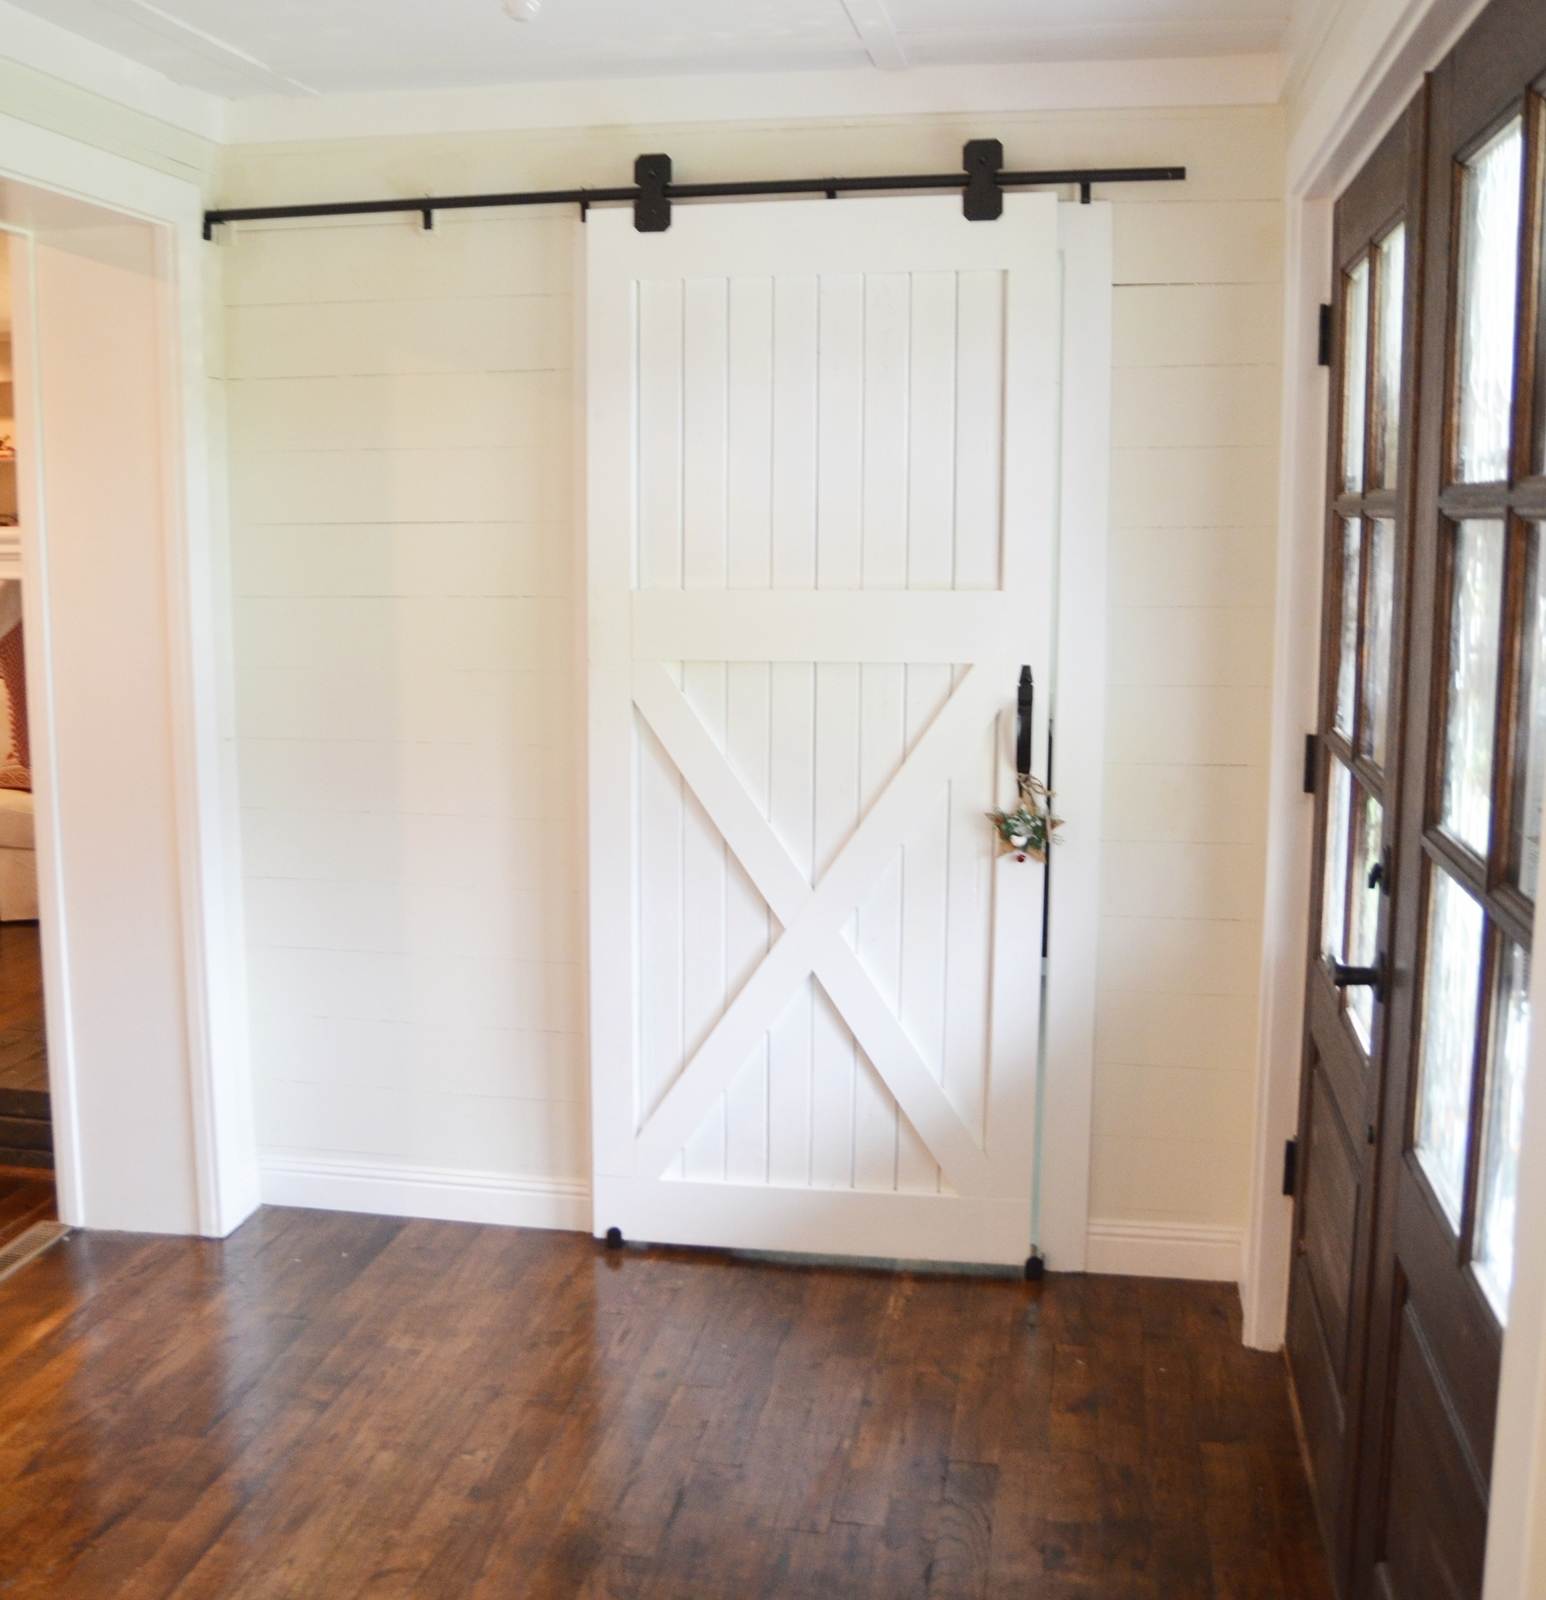 Barn Door Design Ideas Of Diy Barn Door Designs And Tutorials From Thrifty Decor Chick